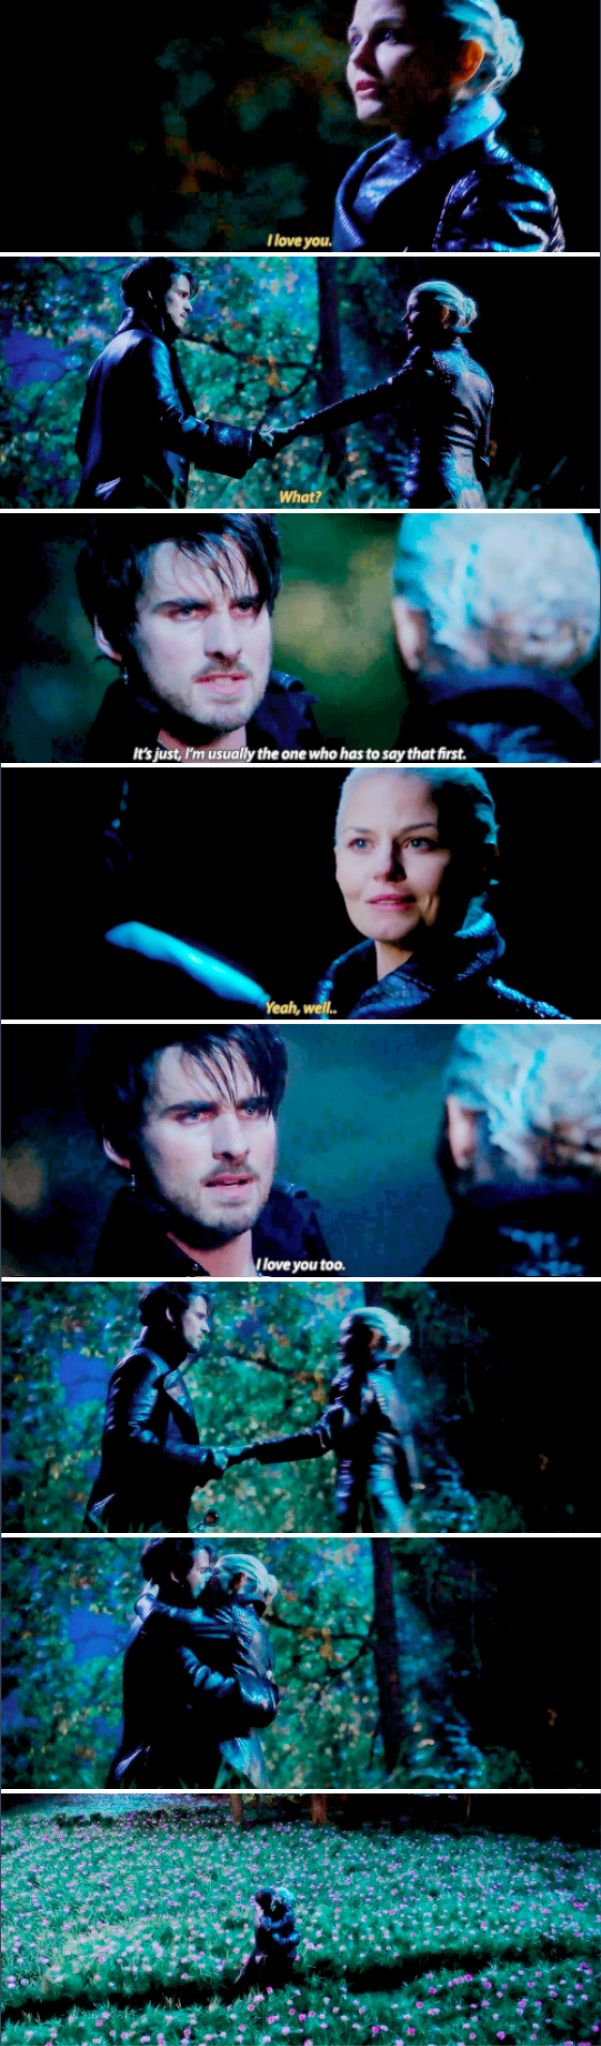 """I'm usually the one who has to say that first"" - Dark Hook and Dark Swan #OnceUponATime"